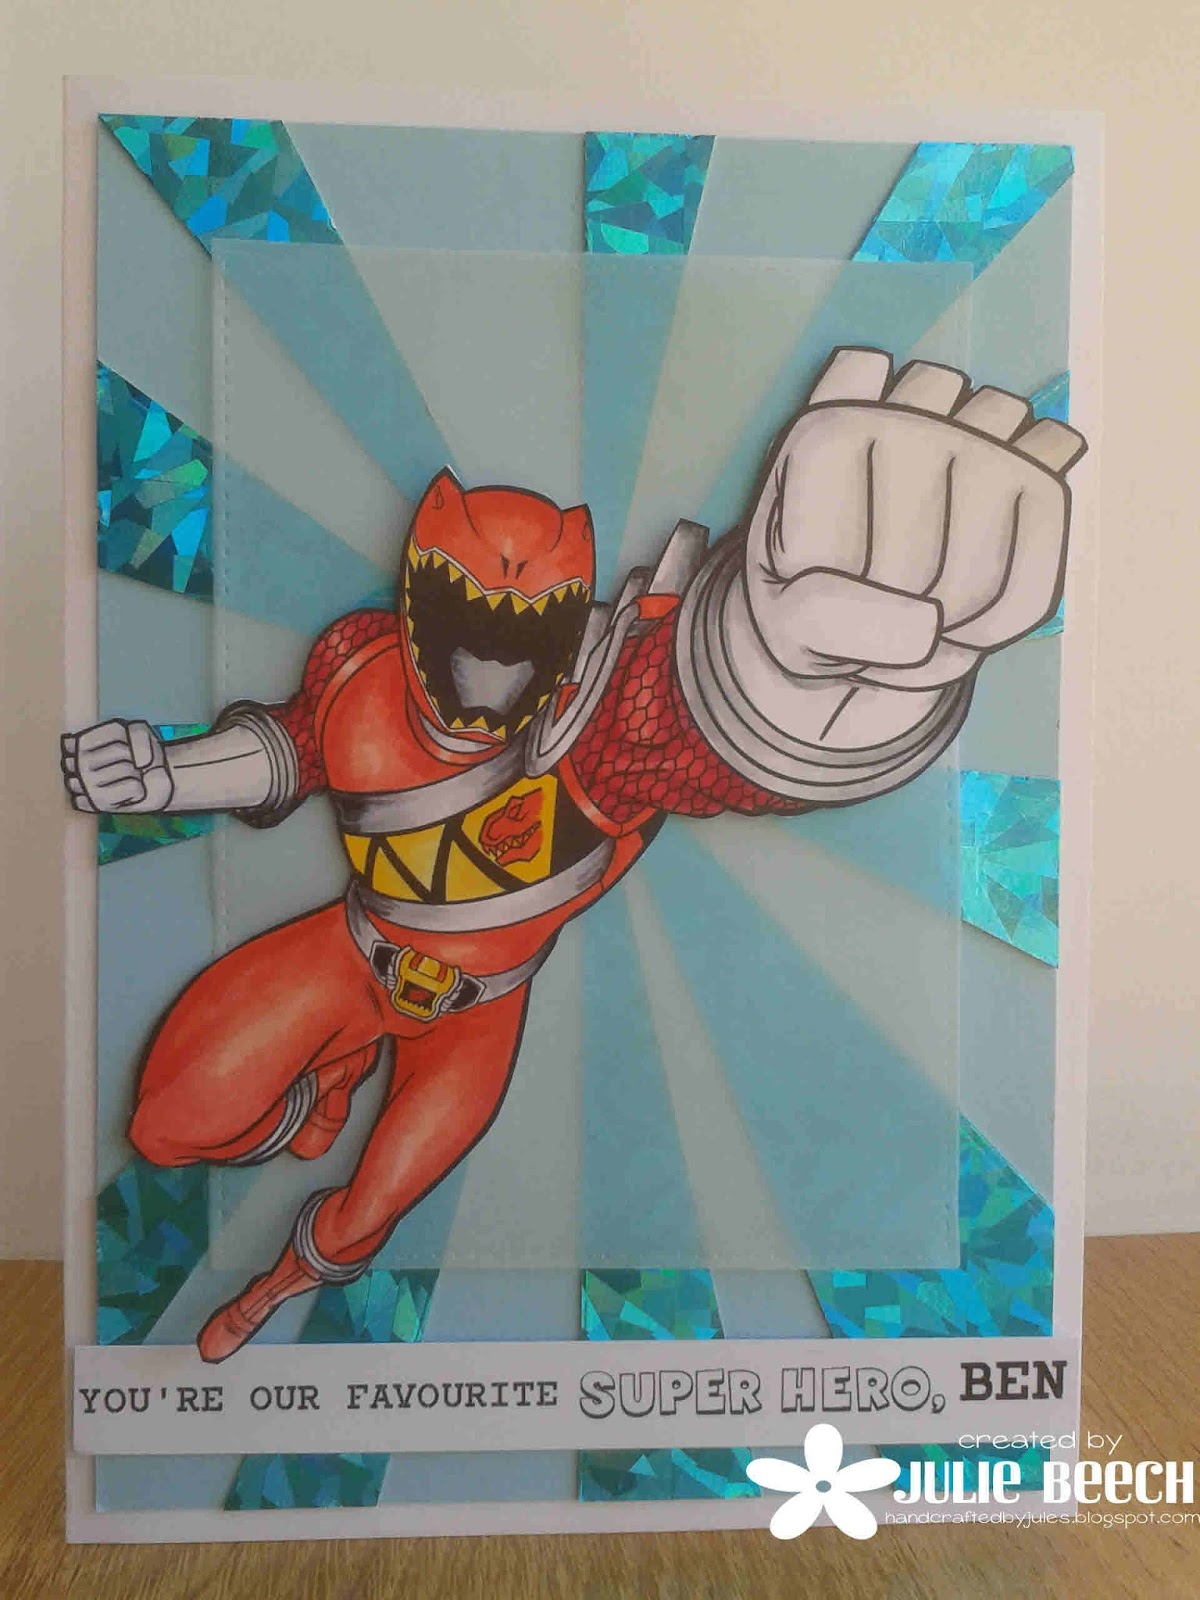 Power Rangers Blogspot : power, rangers, blogspot, Crafted, Jules:, Power, Rangers, Charge